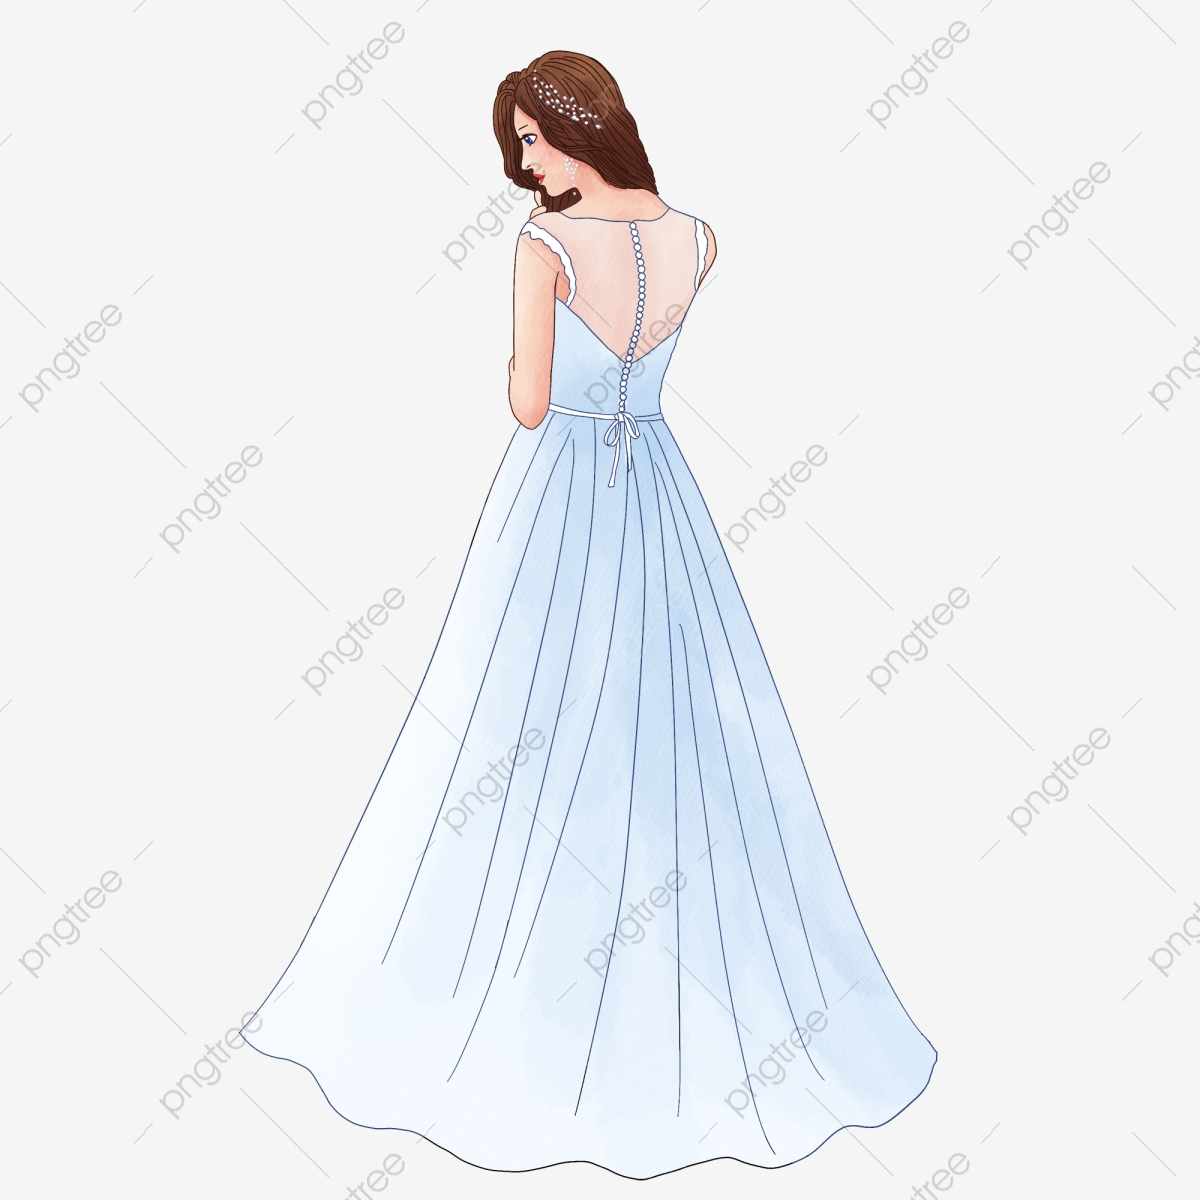 Princess White Gauze Princess White Gauze Cartoon PNG